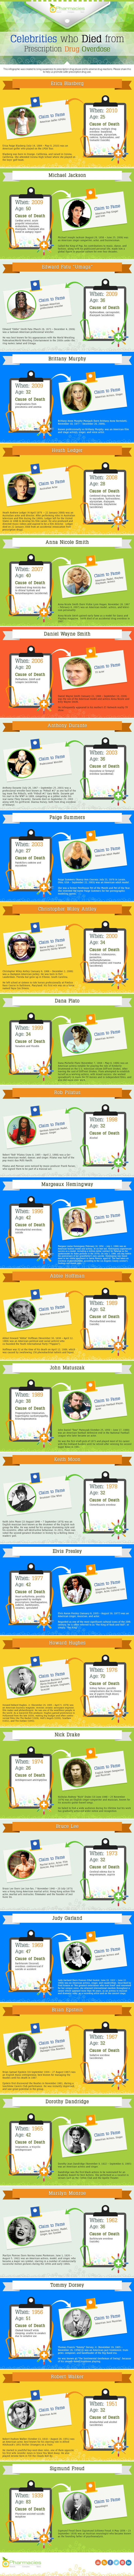 Celebrities Who Died From Prescription Drug Overdose   #Celebrities #Drugs #infographic #DrugAbuse